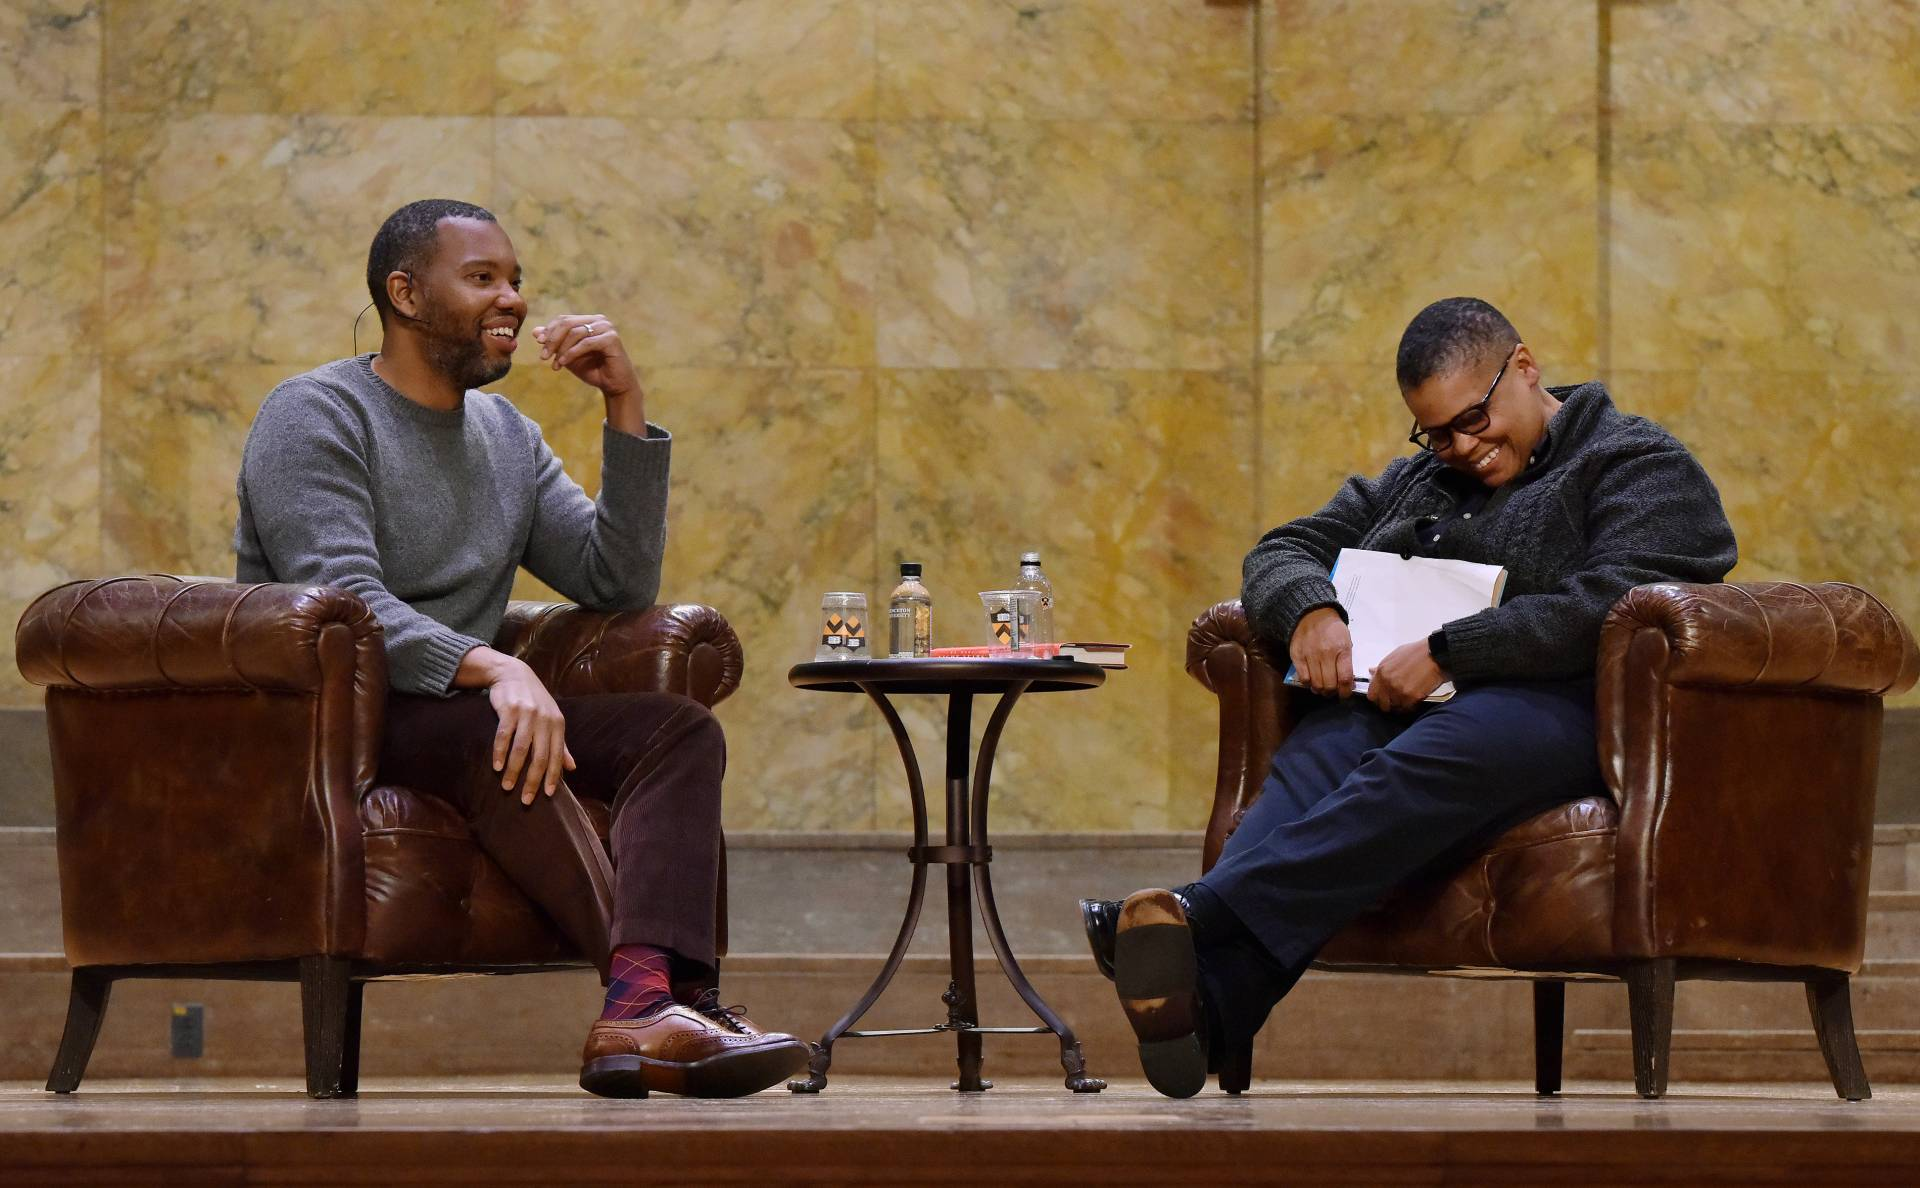 Ta-Nehisi Coates (left) and Keeanga-Yamahtta Taylor share a joke onstage during Coates' lecture